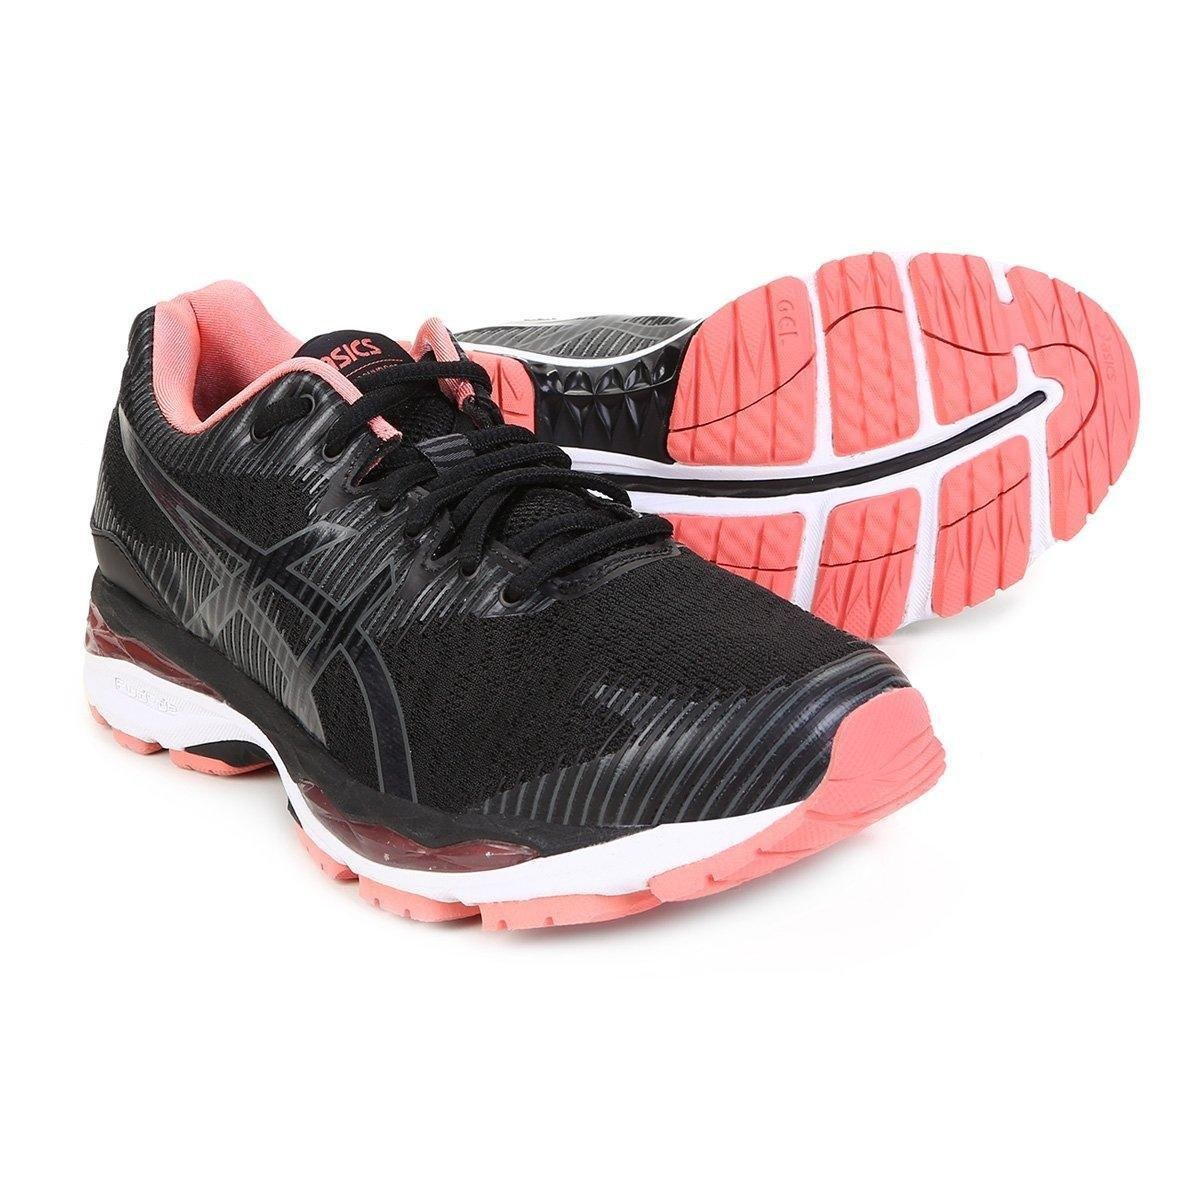 tenis mizuno wave creation 15w feminino zattini